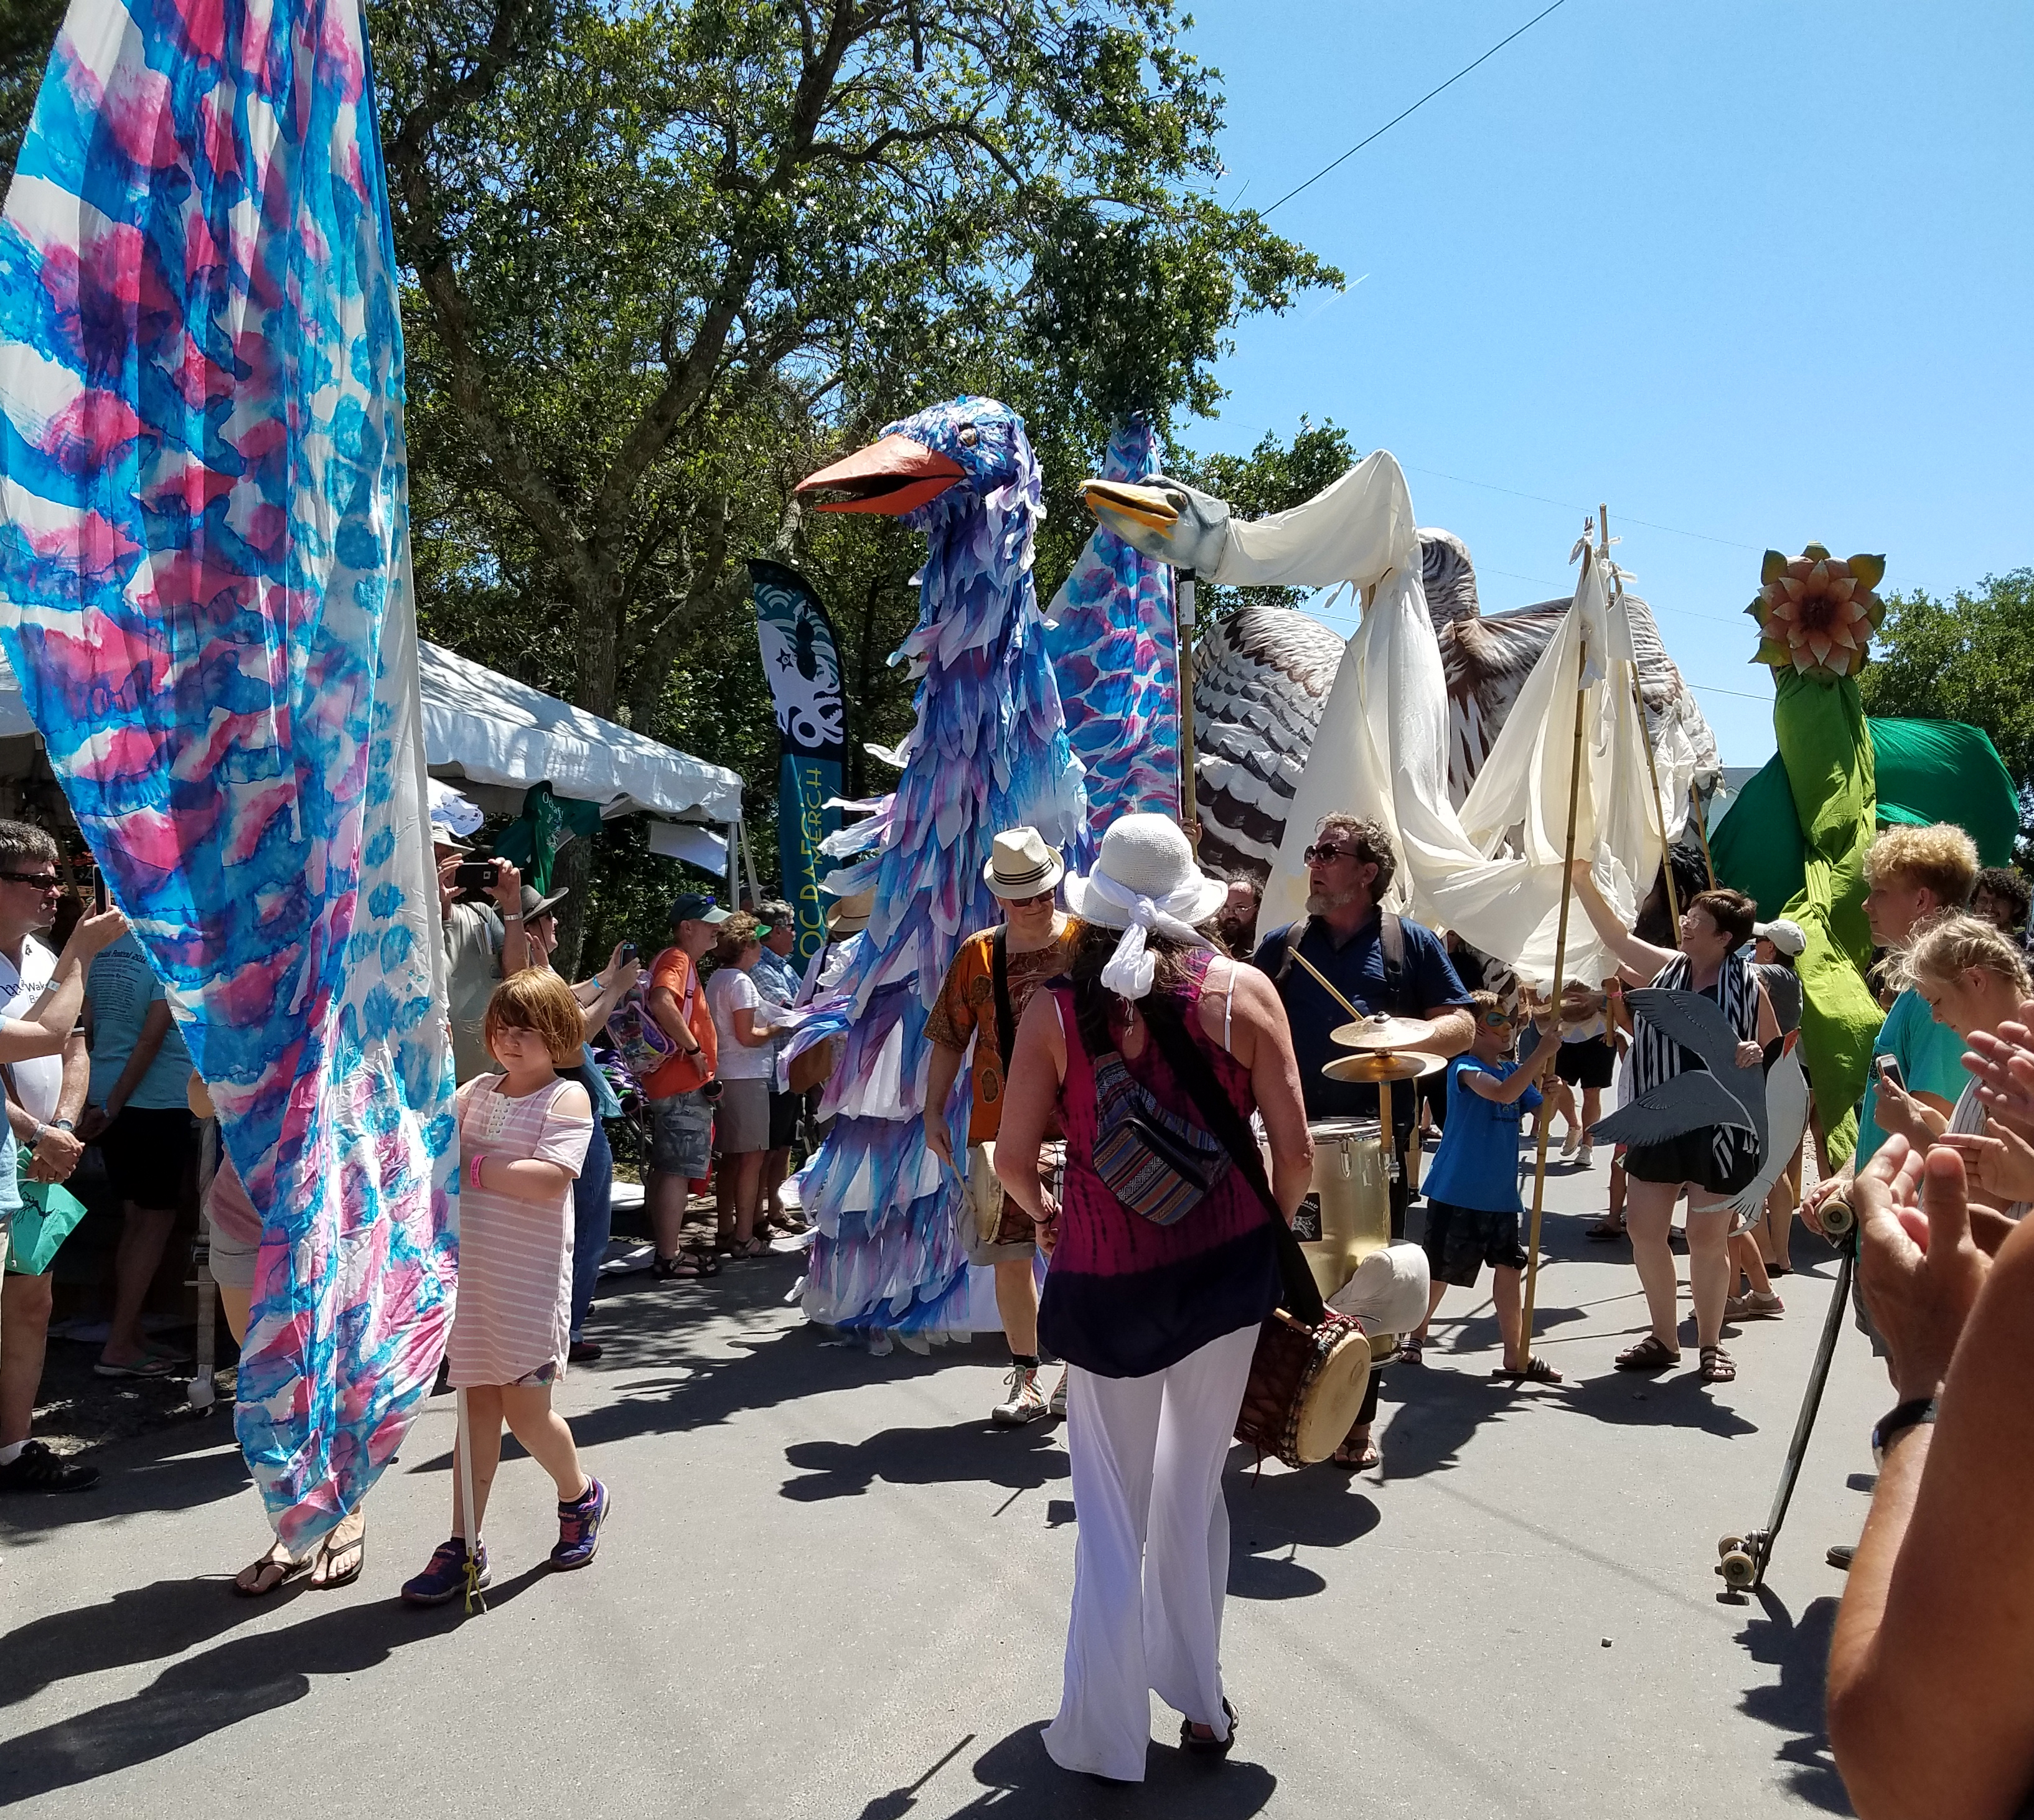 Paperhand Puppets at the Ocrafolk Festival